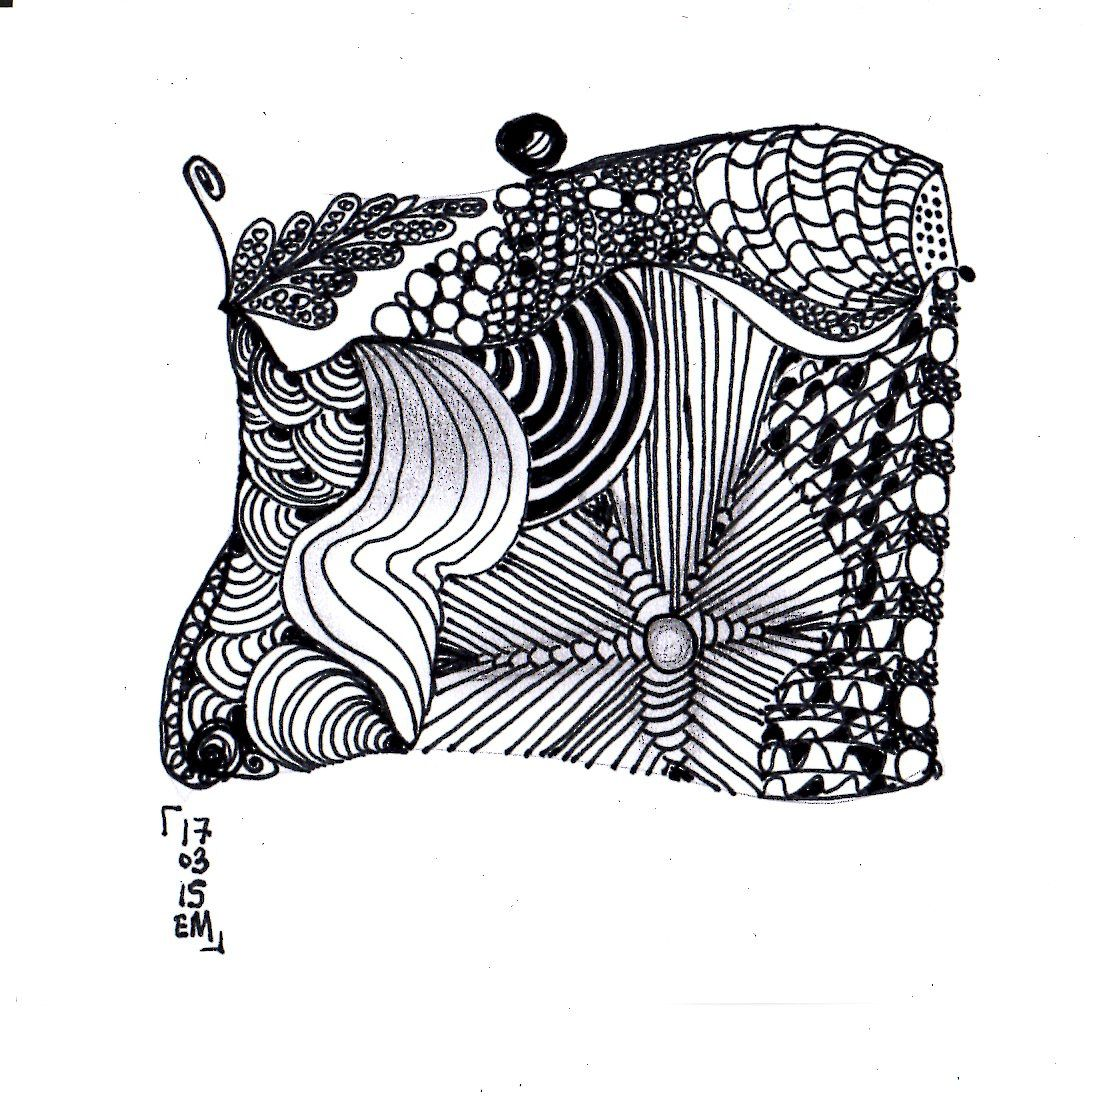 Zentangle® #13 le 17 mars 2015 emma messana